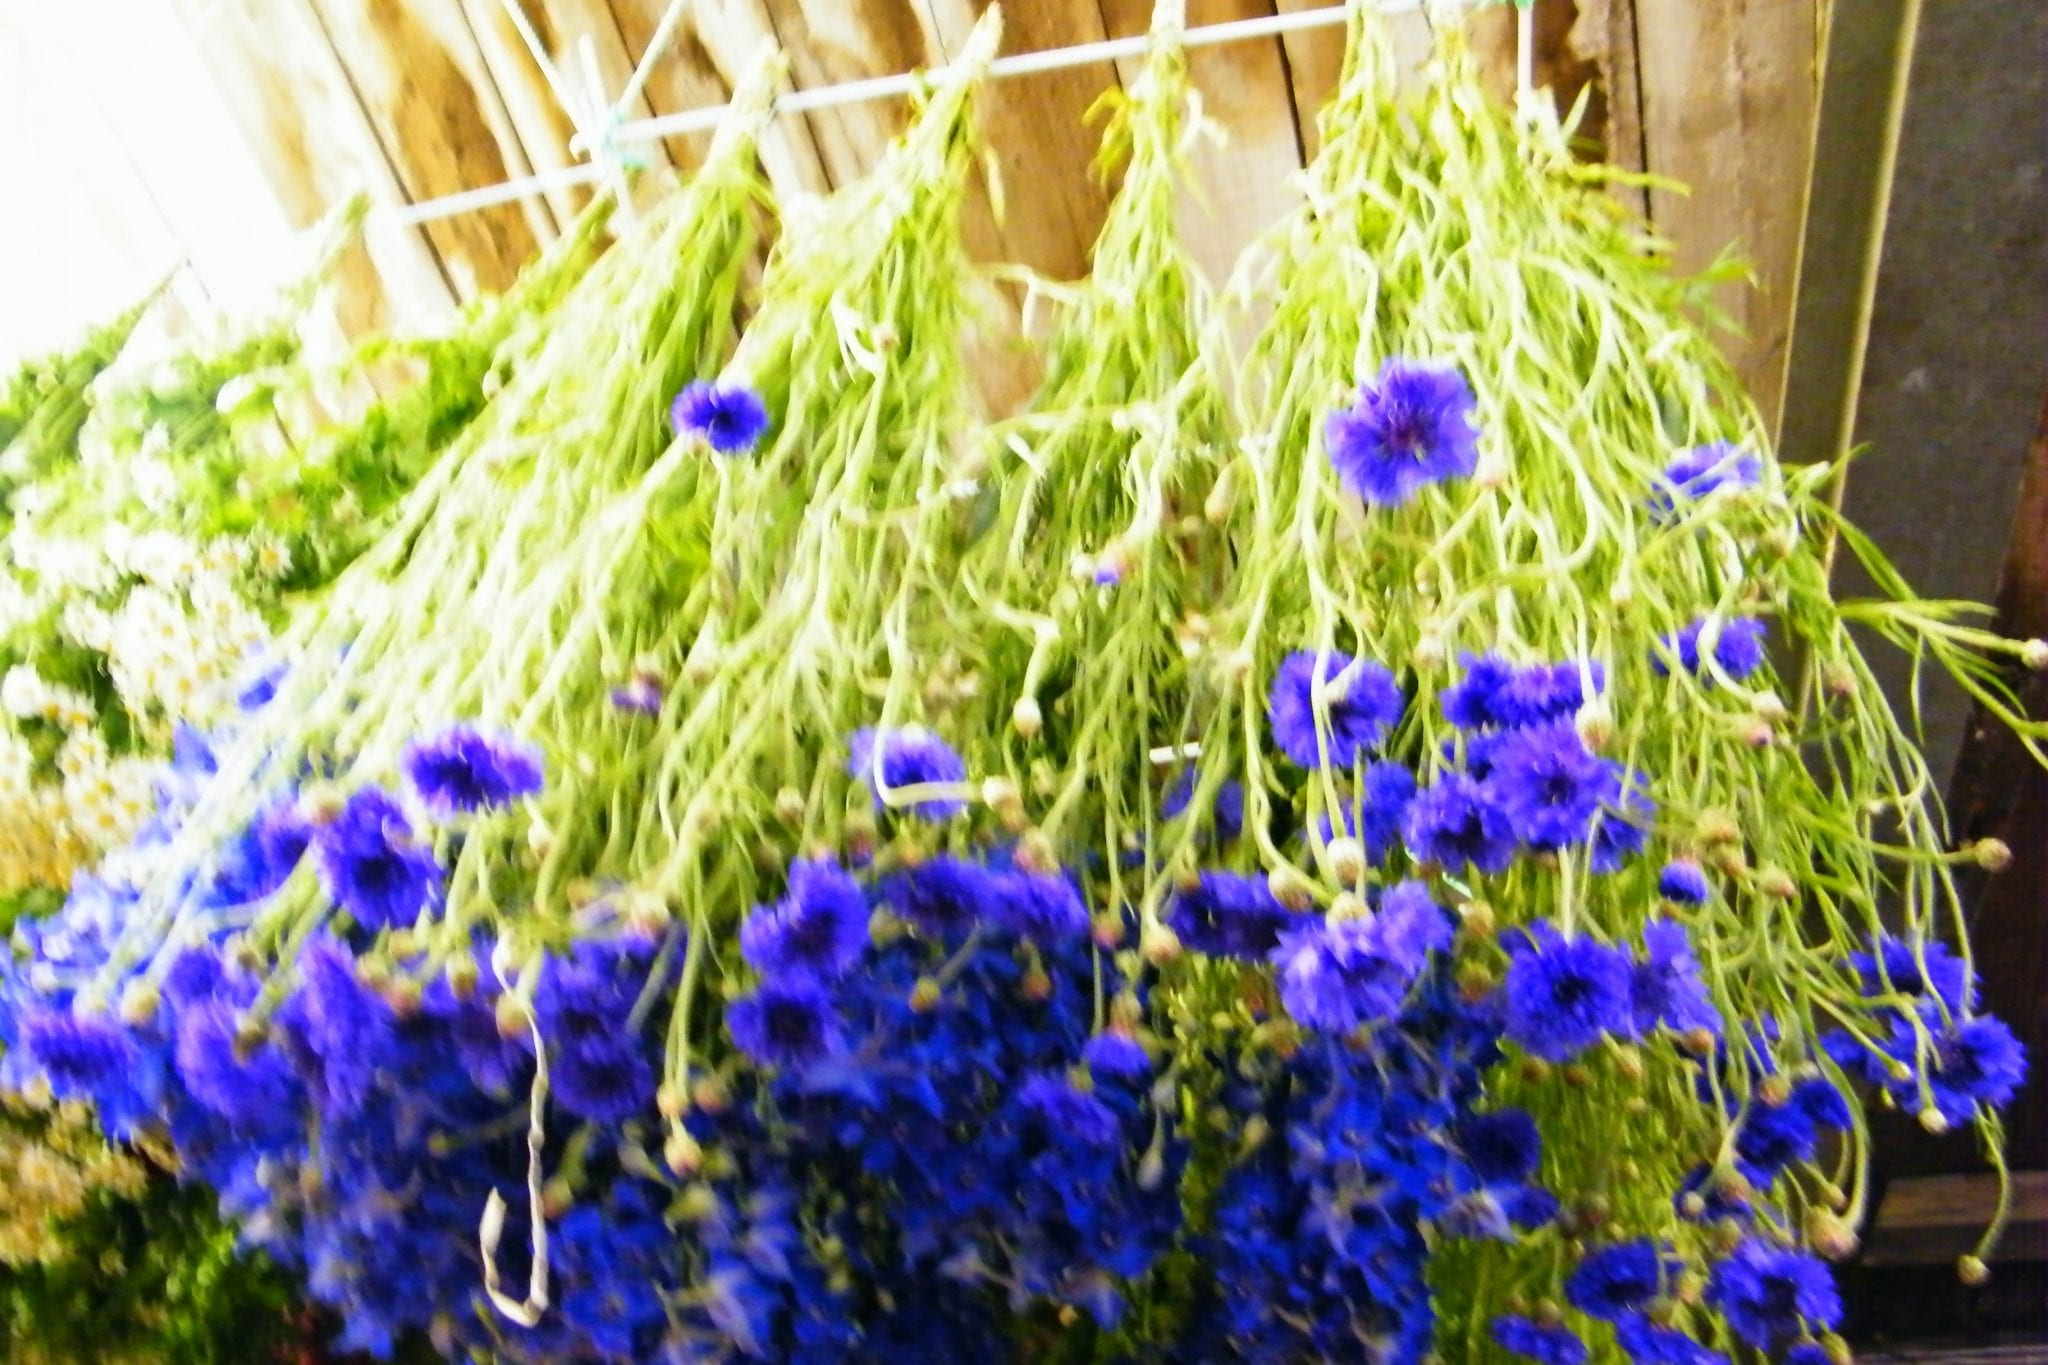 cornflowers hung up to dry in my workshop